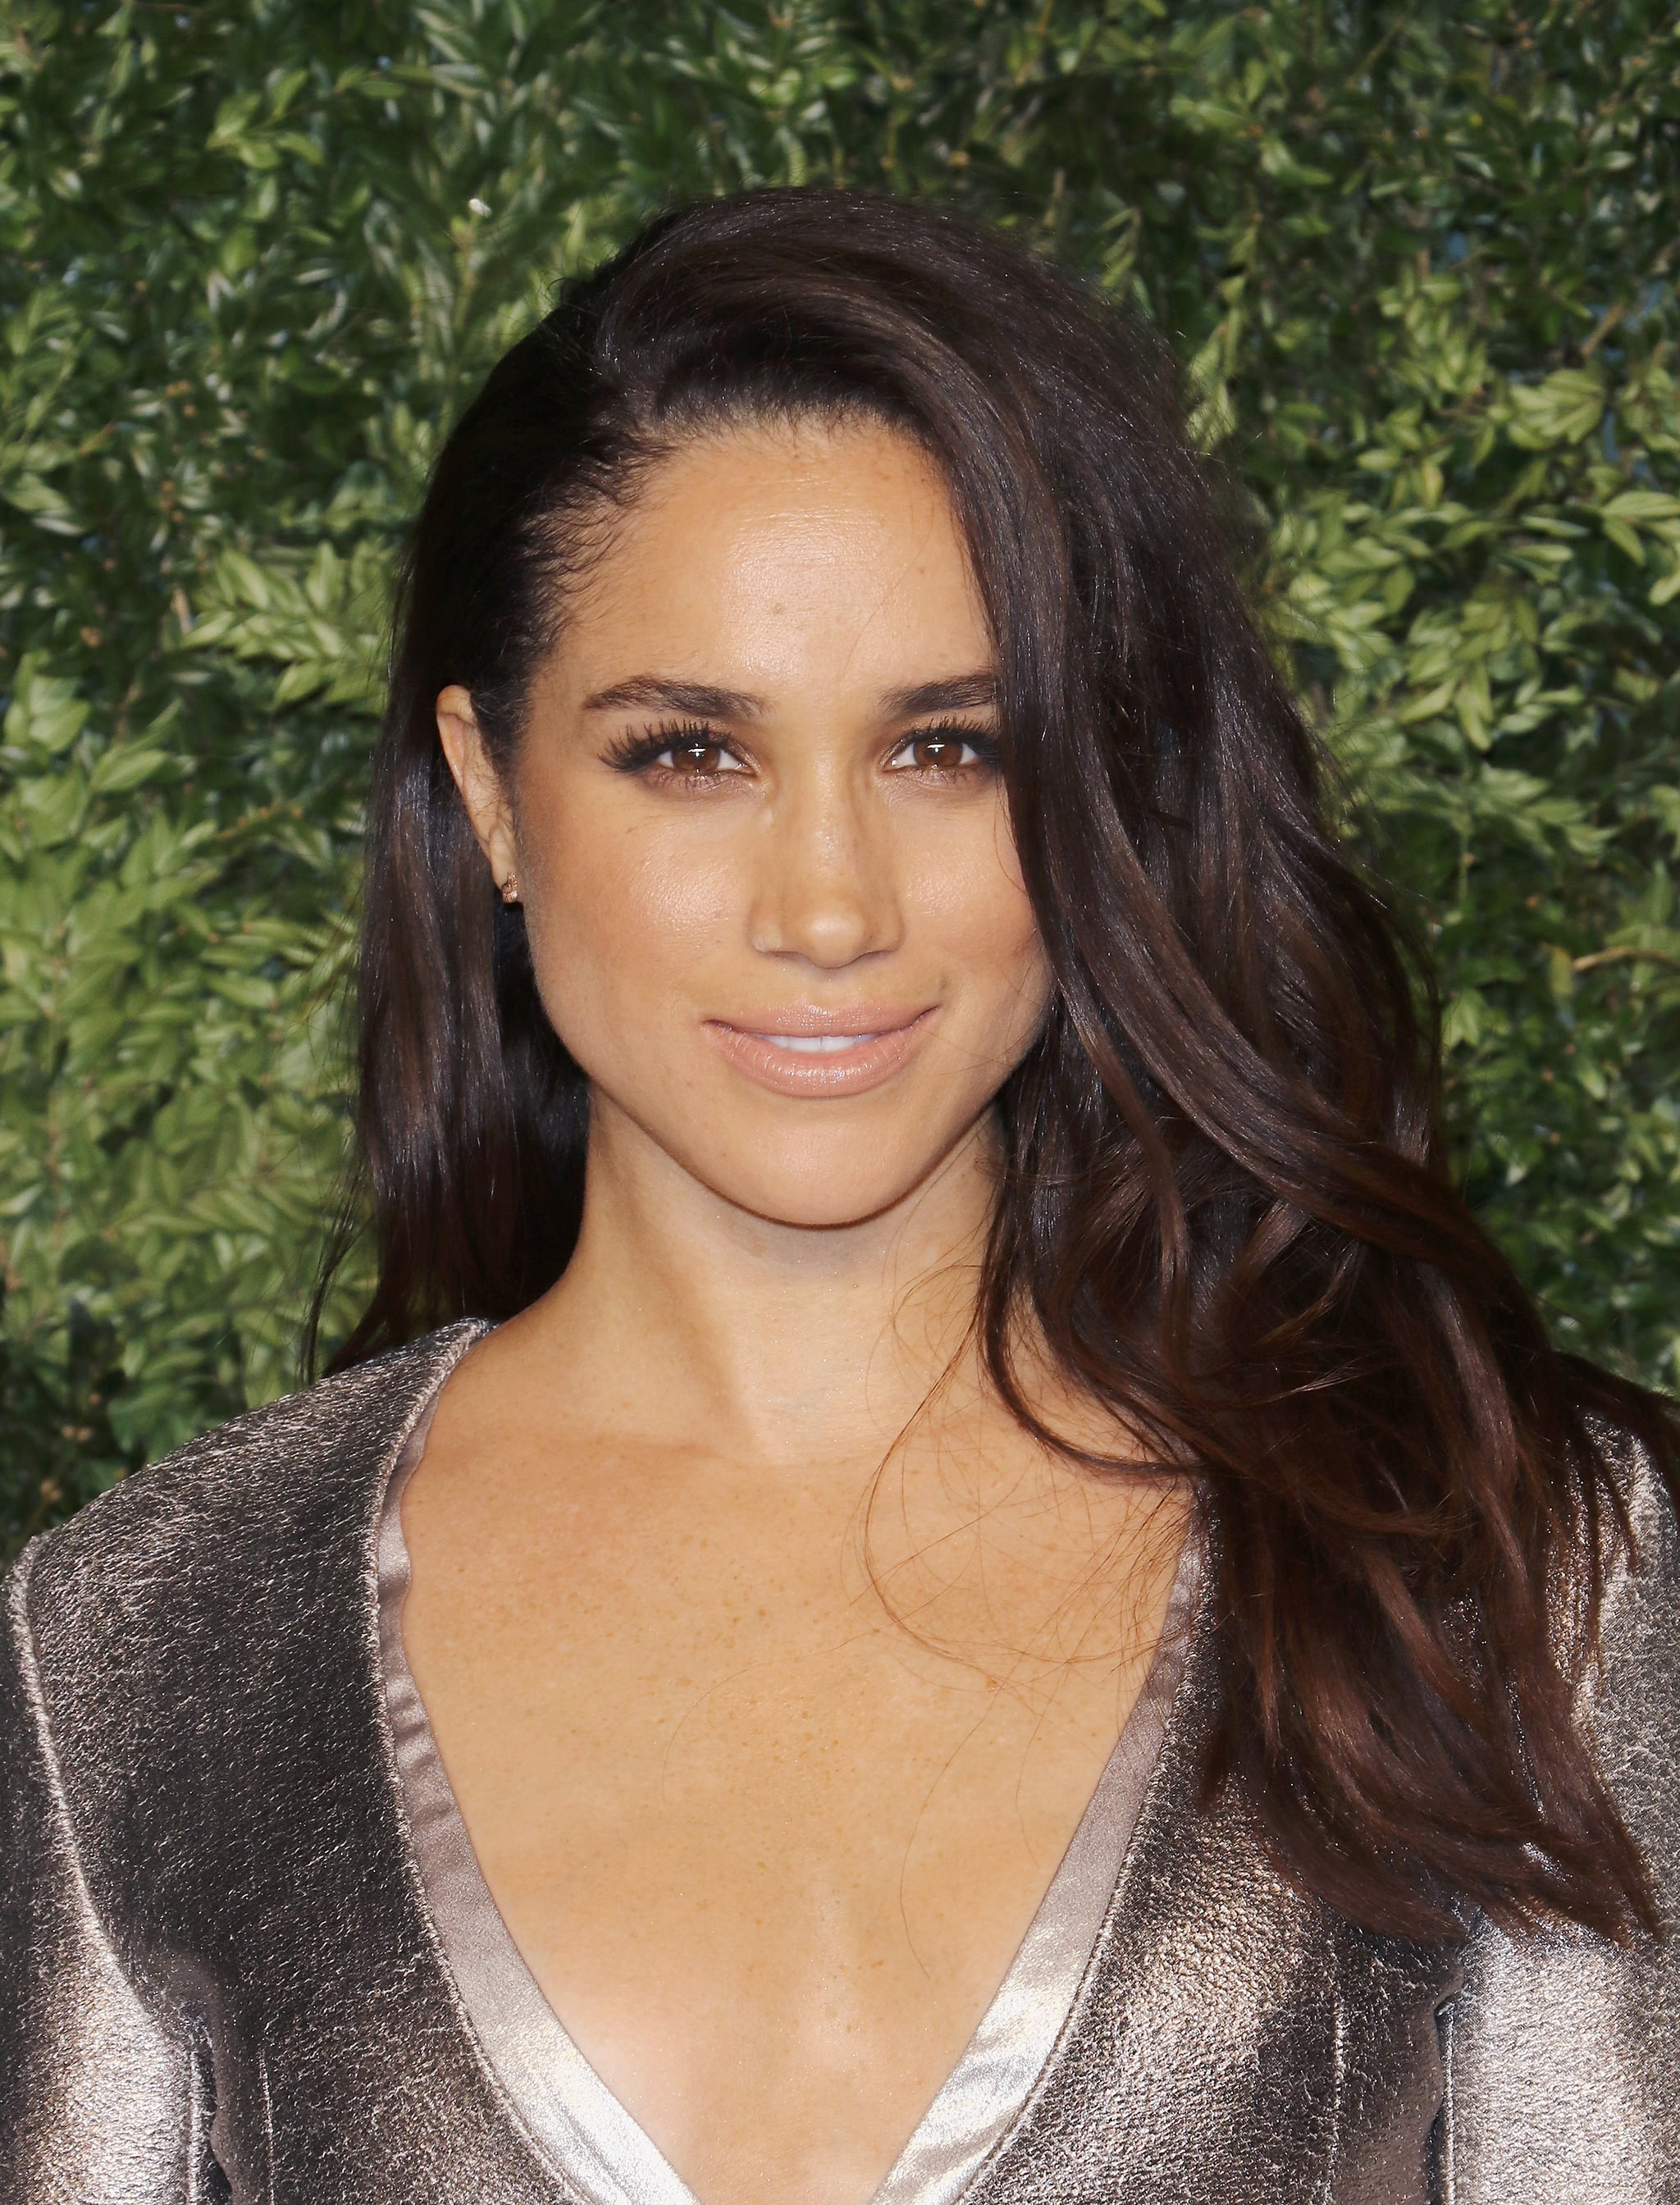 Meghan Markle Quotes About Being Biracial March 2017 ...